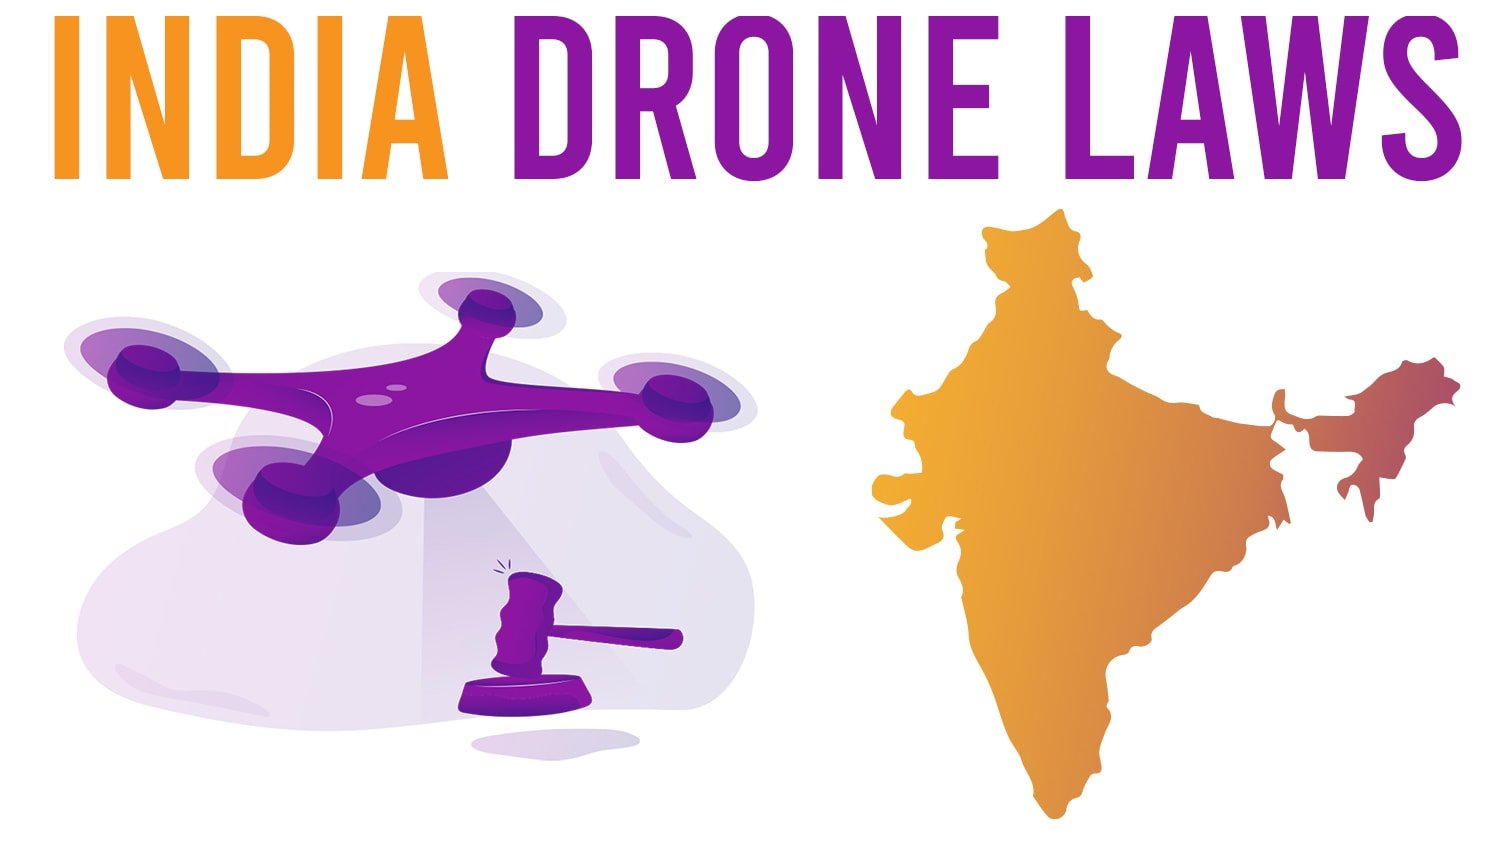 india-drone-laws.jpg